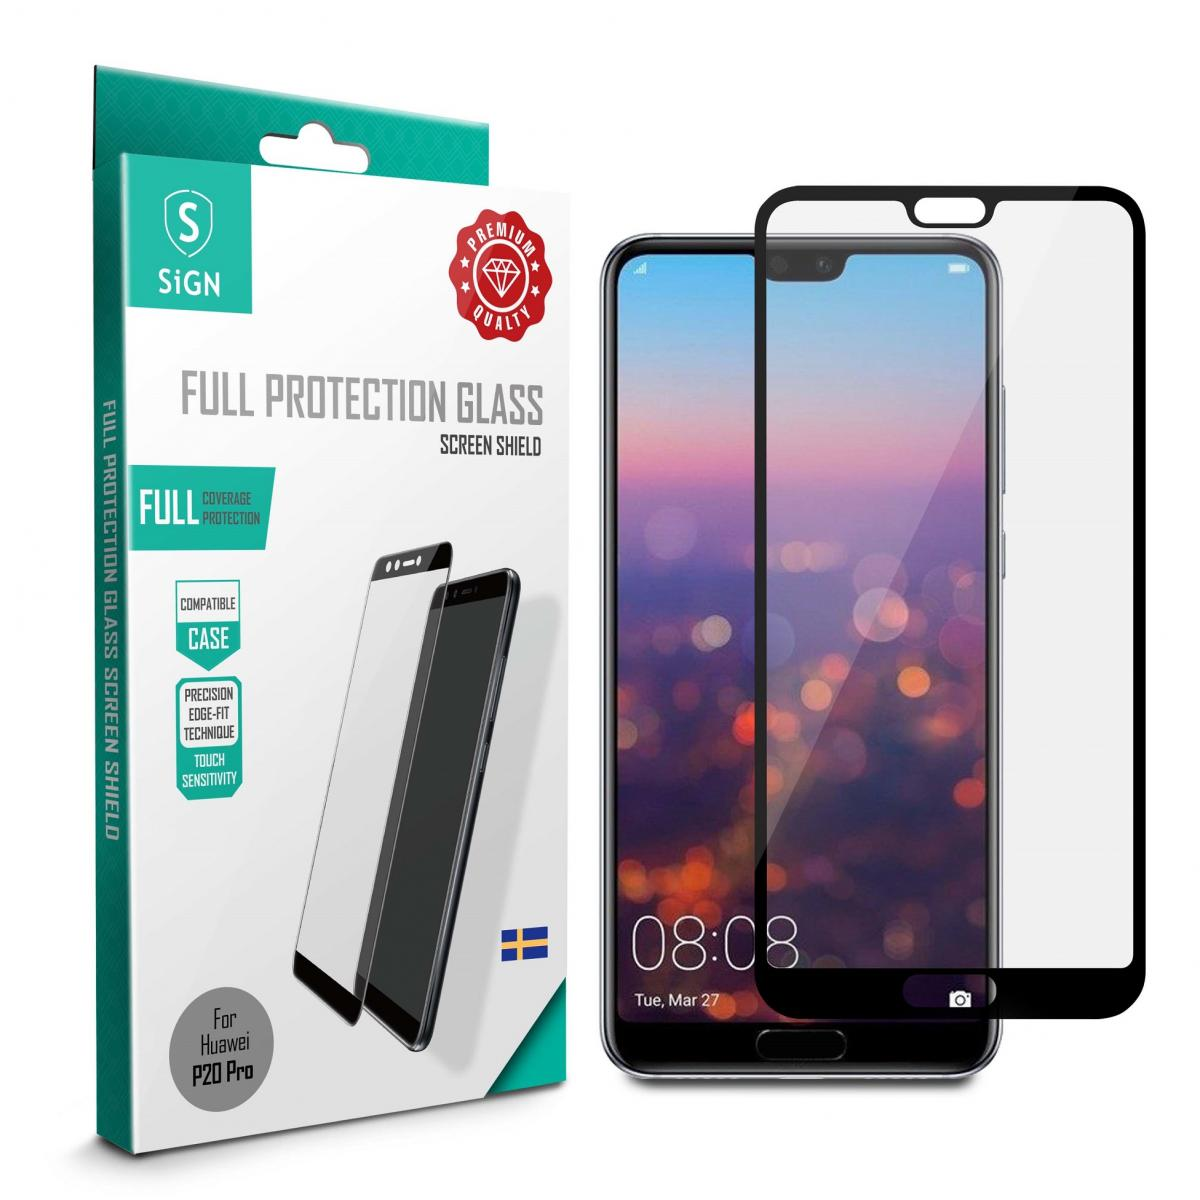 SiGN SiGN Full Cover Screen Protector Tempered Glass for Huawei P20 Pro - Black